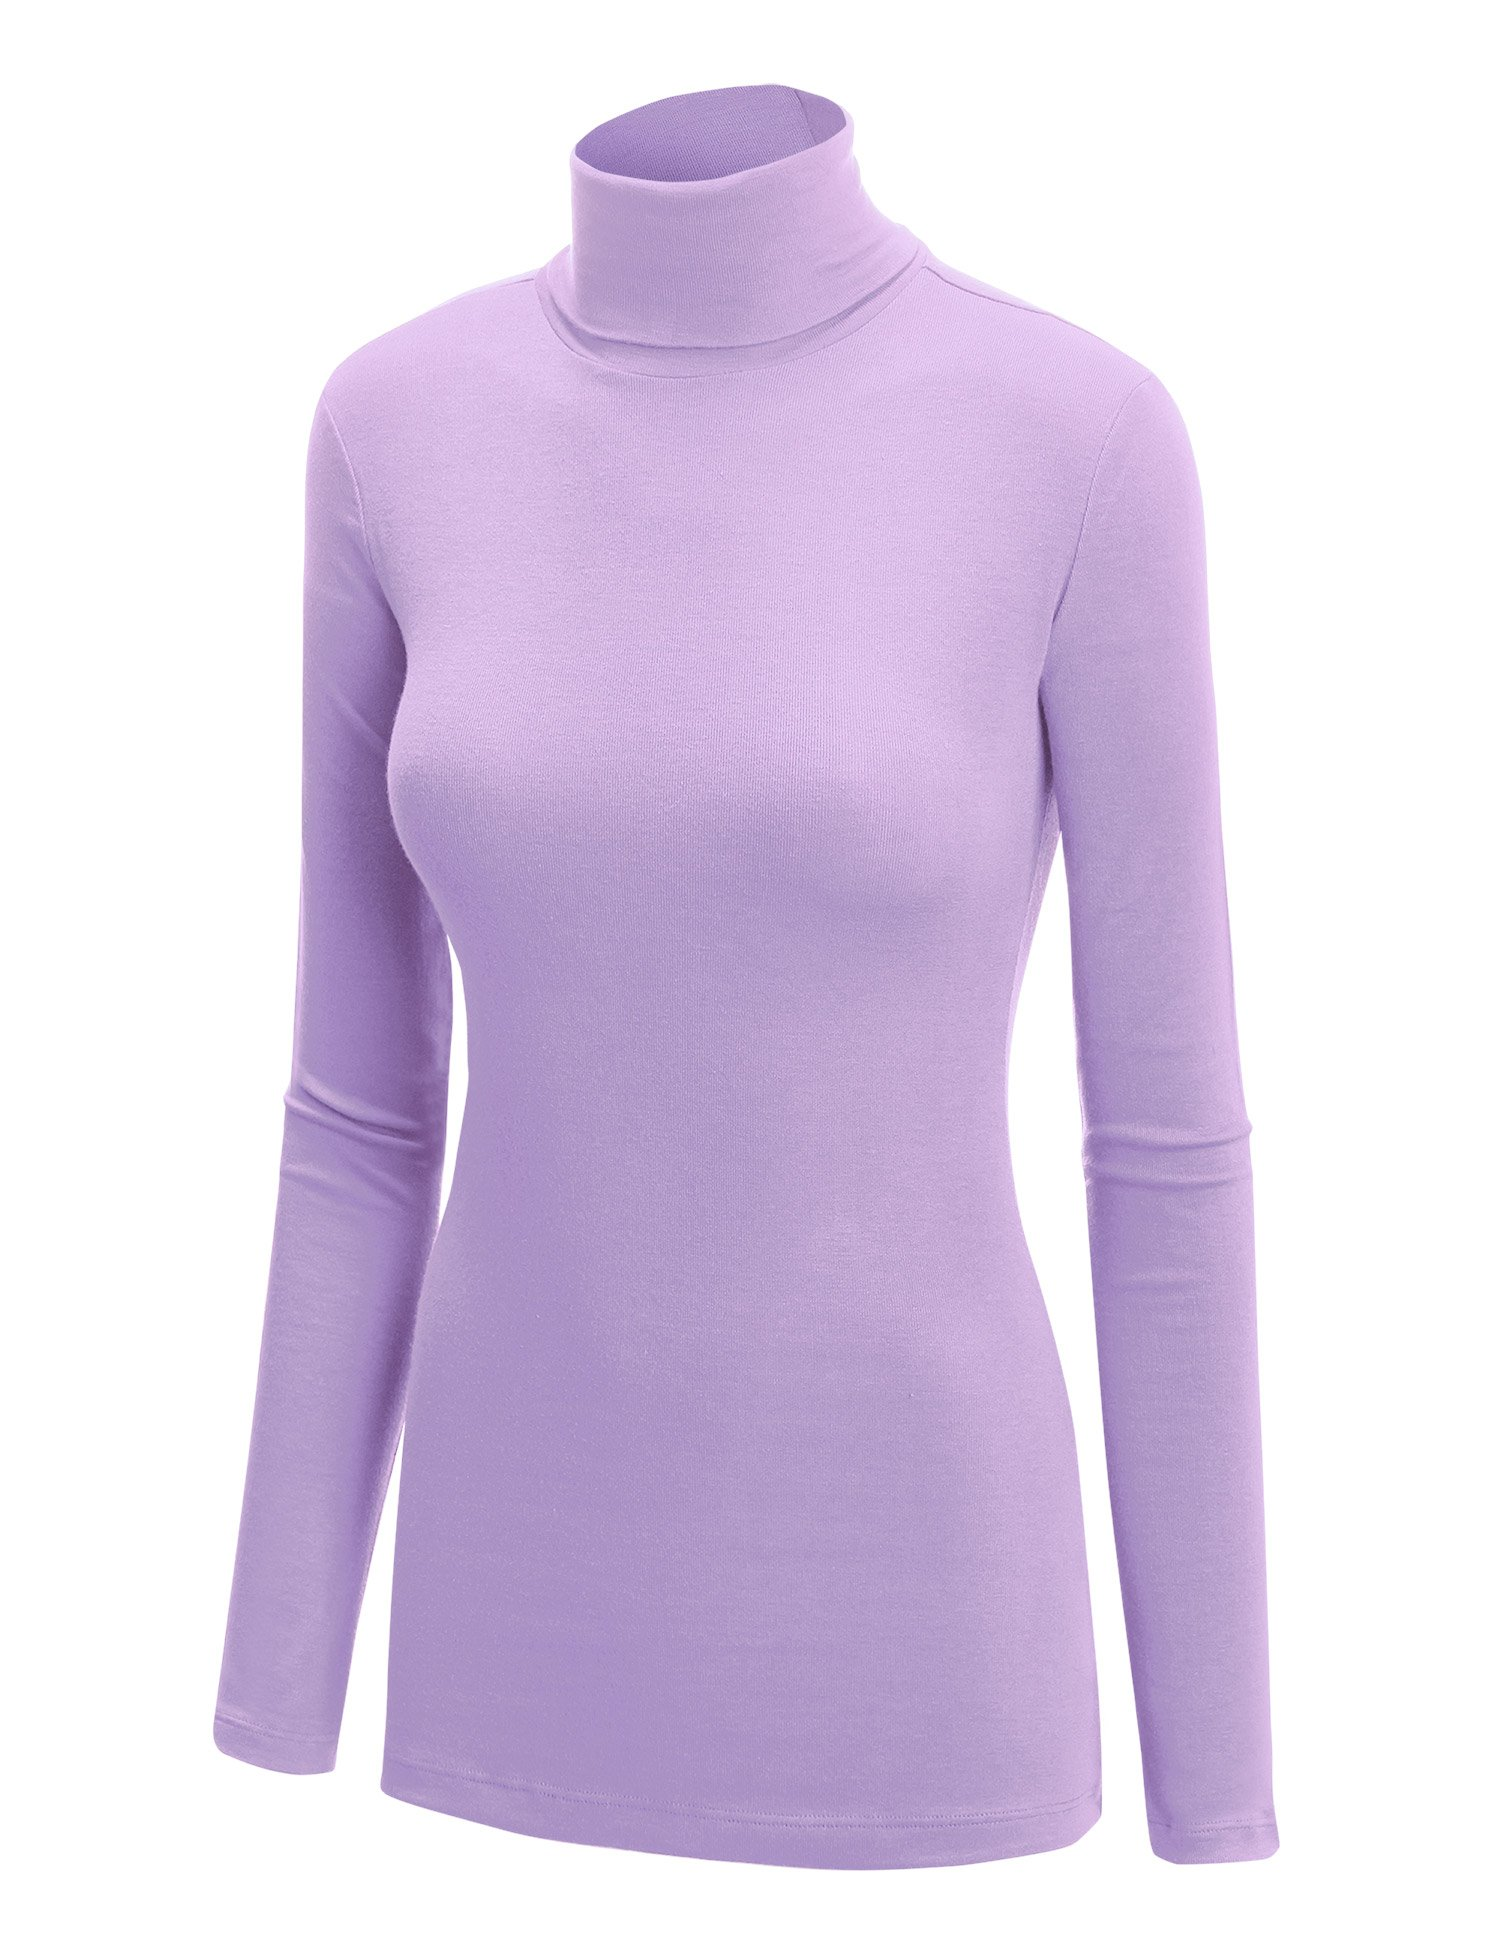 WT950 Womens Long Sleeve Rib Turtleneck Top Pullover Sweater XXL Lilac